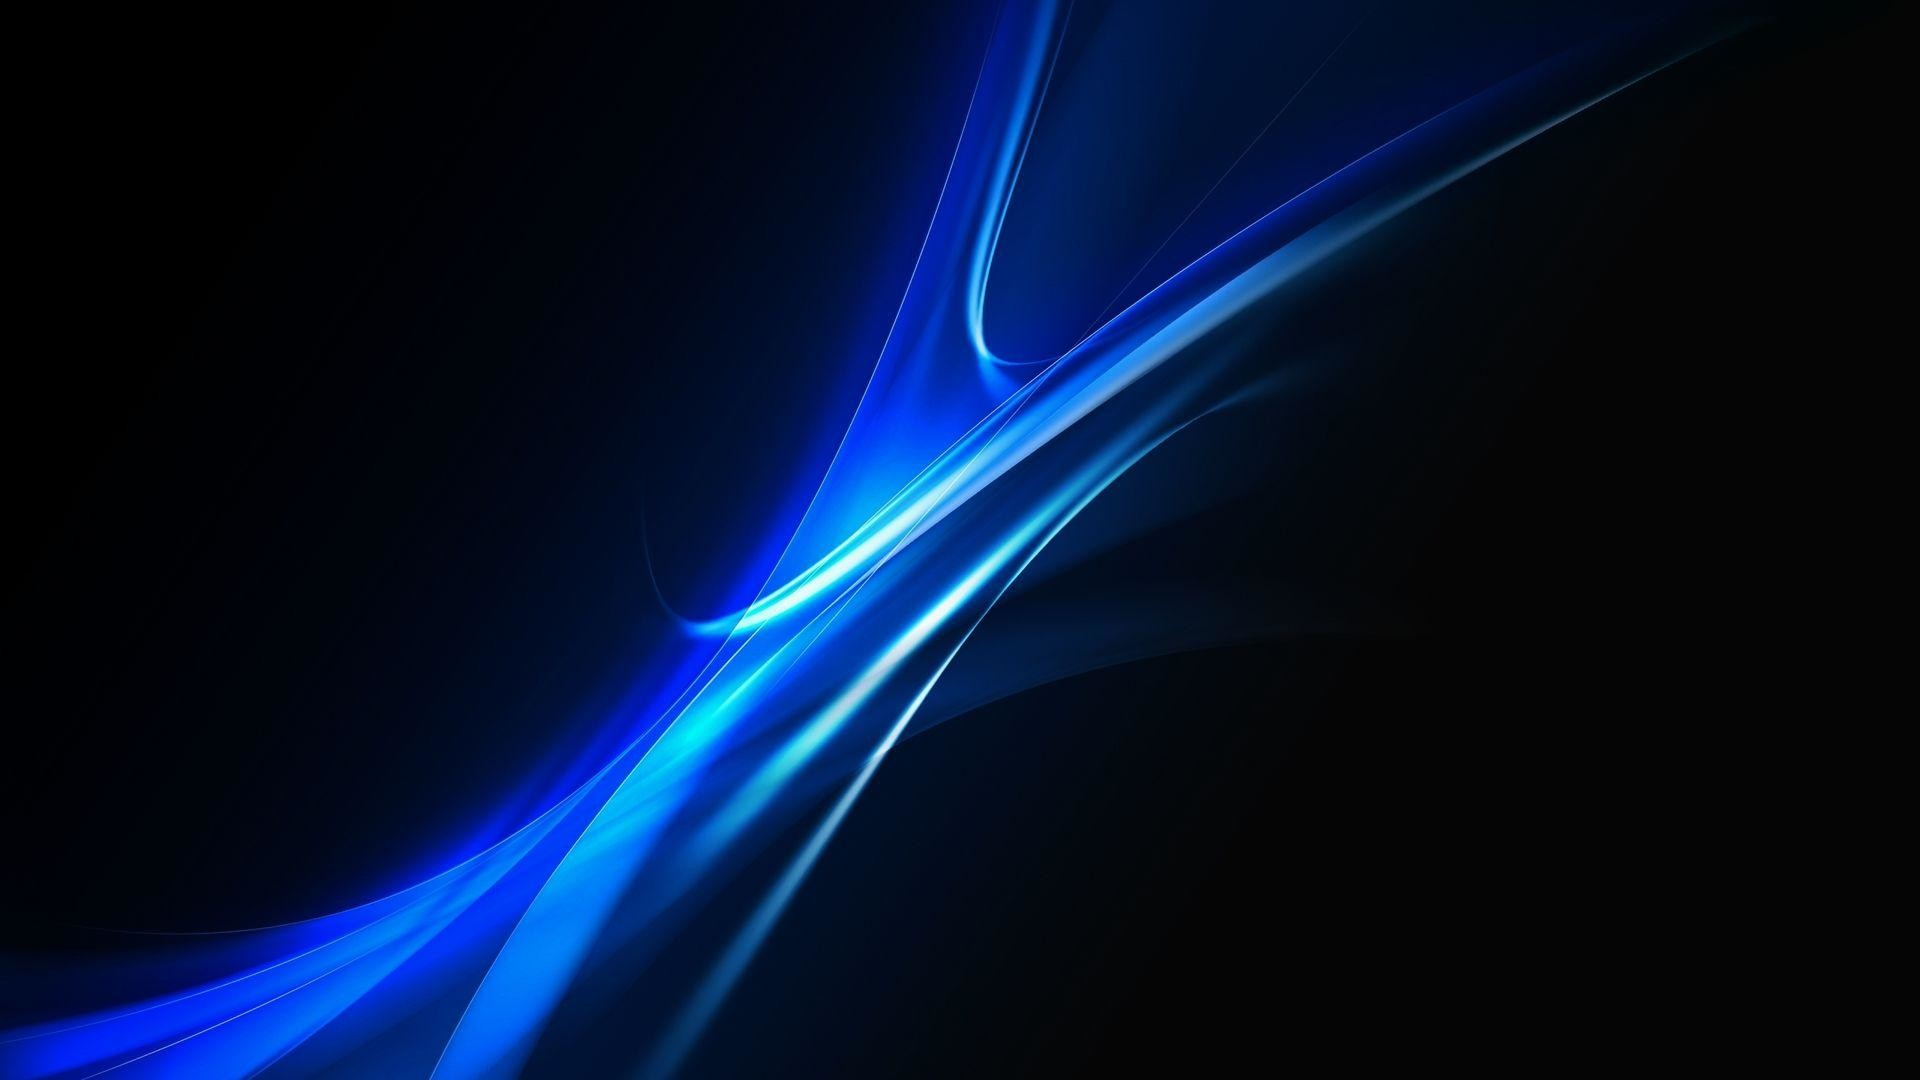 HD Abstract Wallpapers 1920x1080 (61+ Images